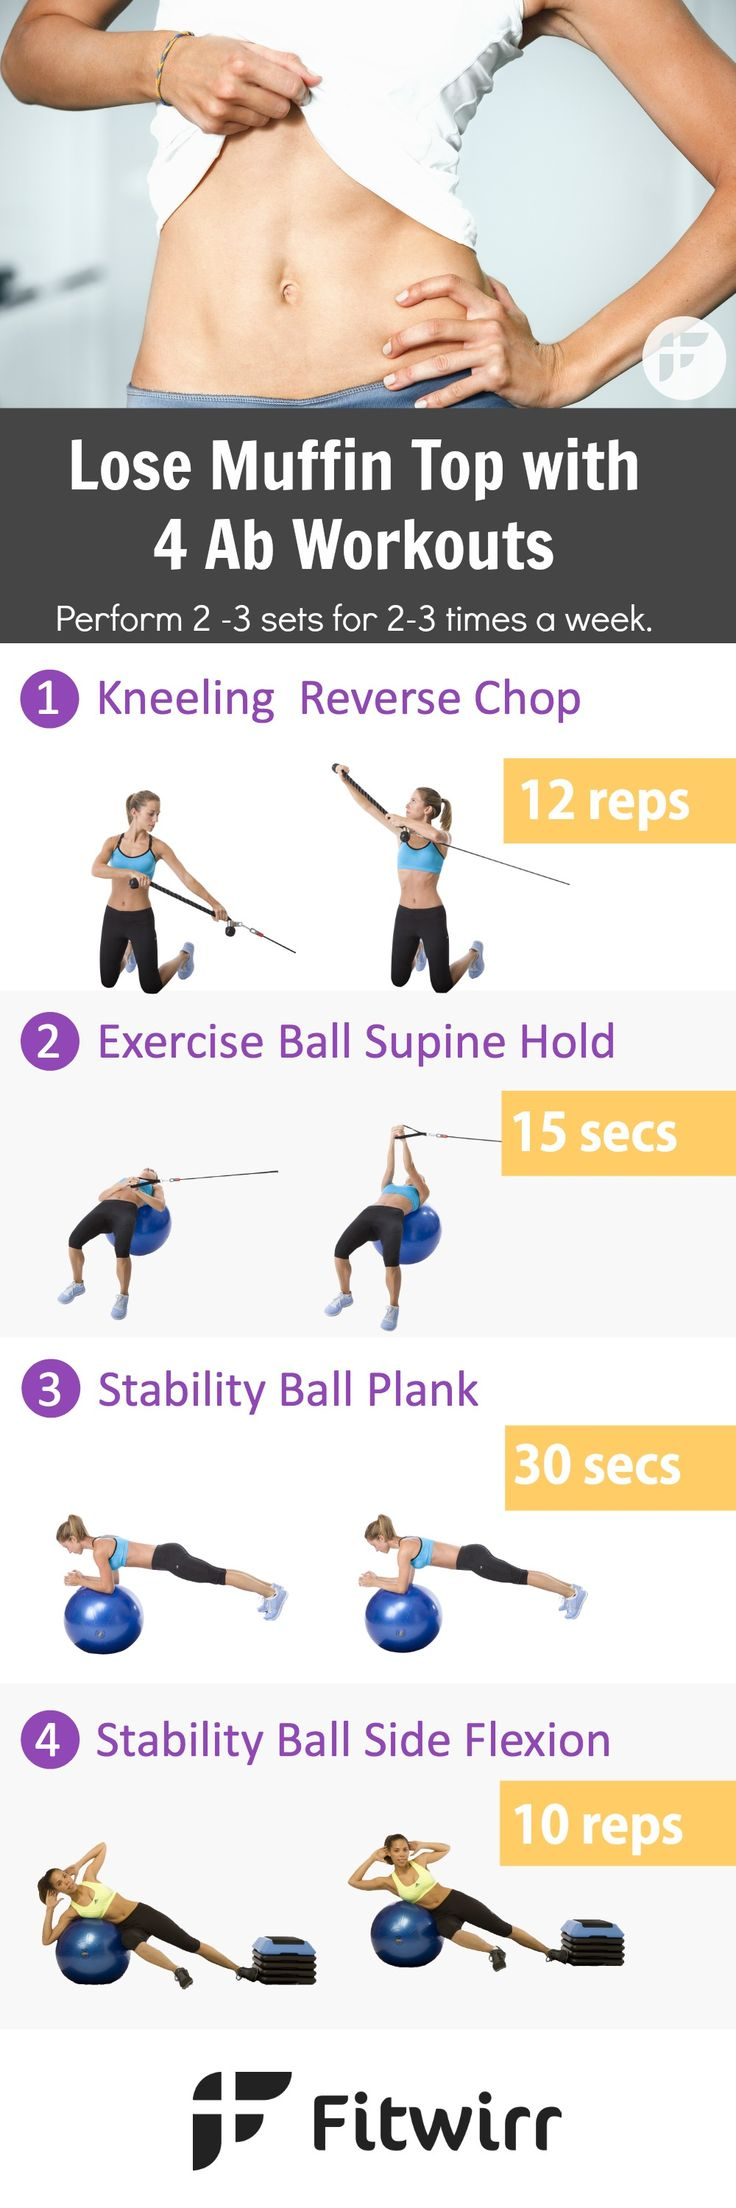 Lose your love handles and tone your abs while strengthen your core with these 4 best lower ab exercises. No need to cover up this summer. Start working on your bikini body now.